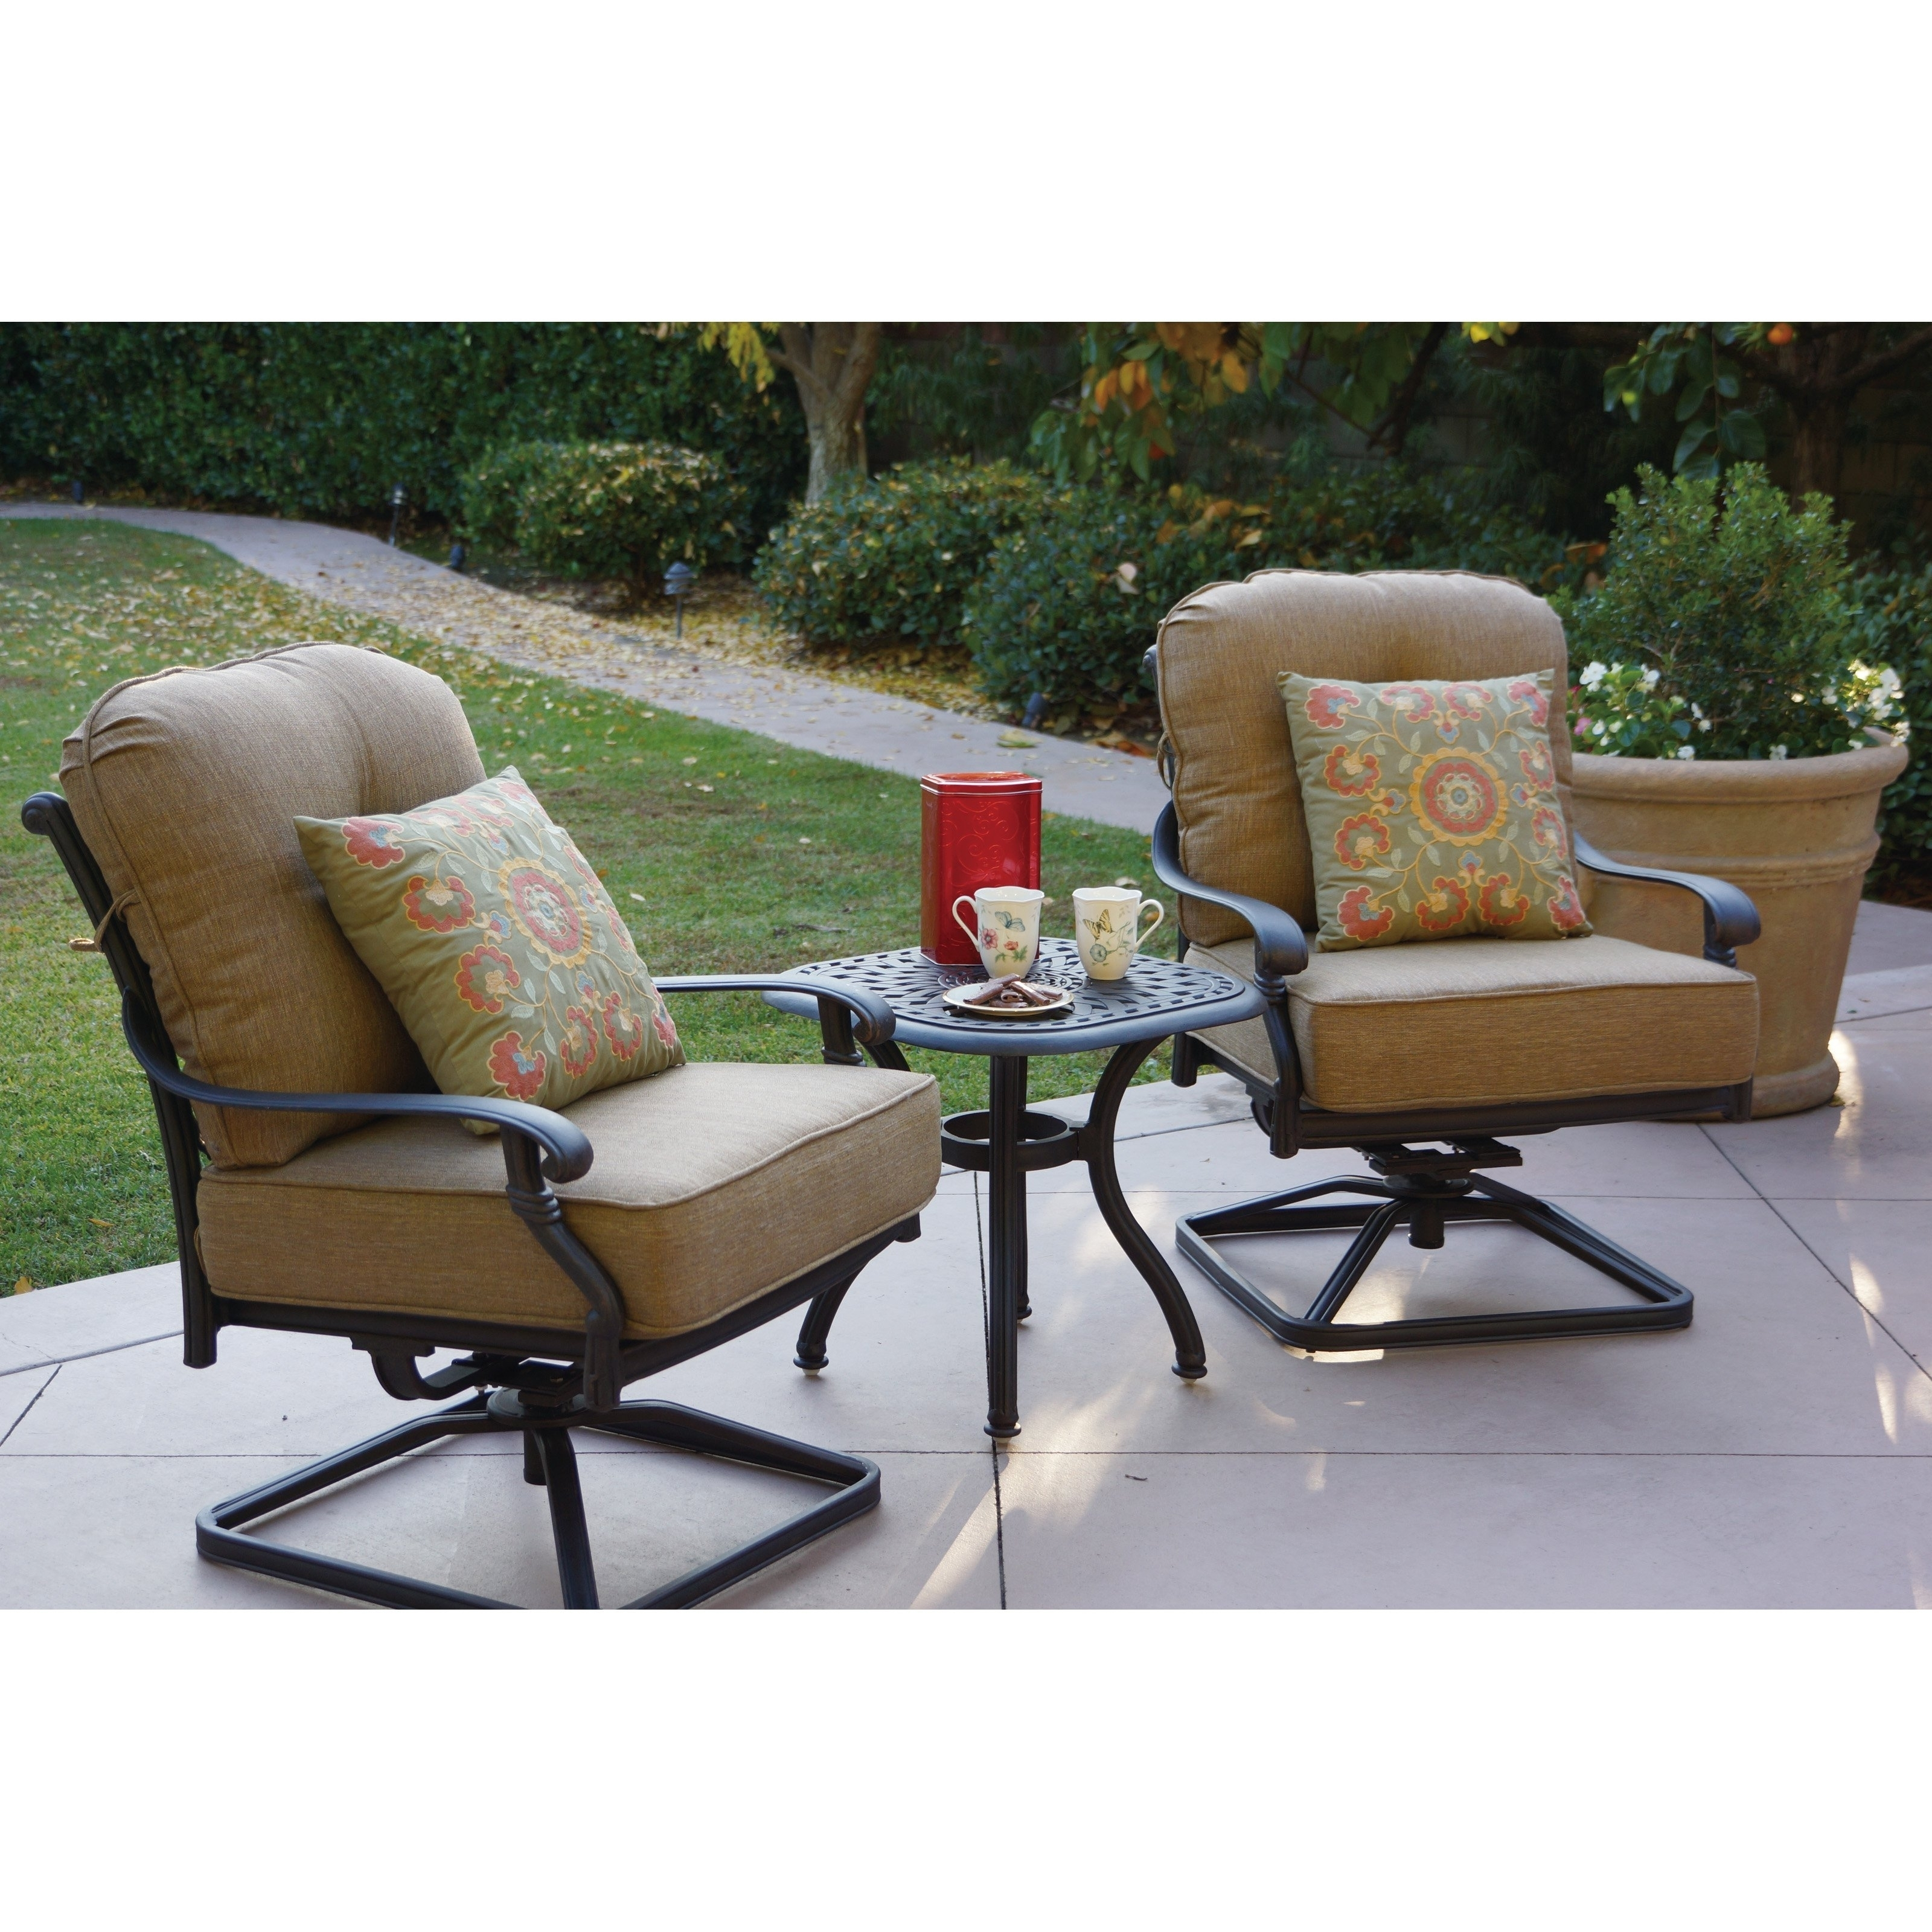 Furniture Remarkable Swivel Rocker Patio Chairs Ideas Made Decor Intended For Patio Rocking Swivel Chairs (#8 of 15)